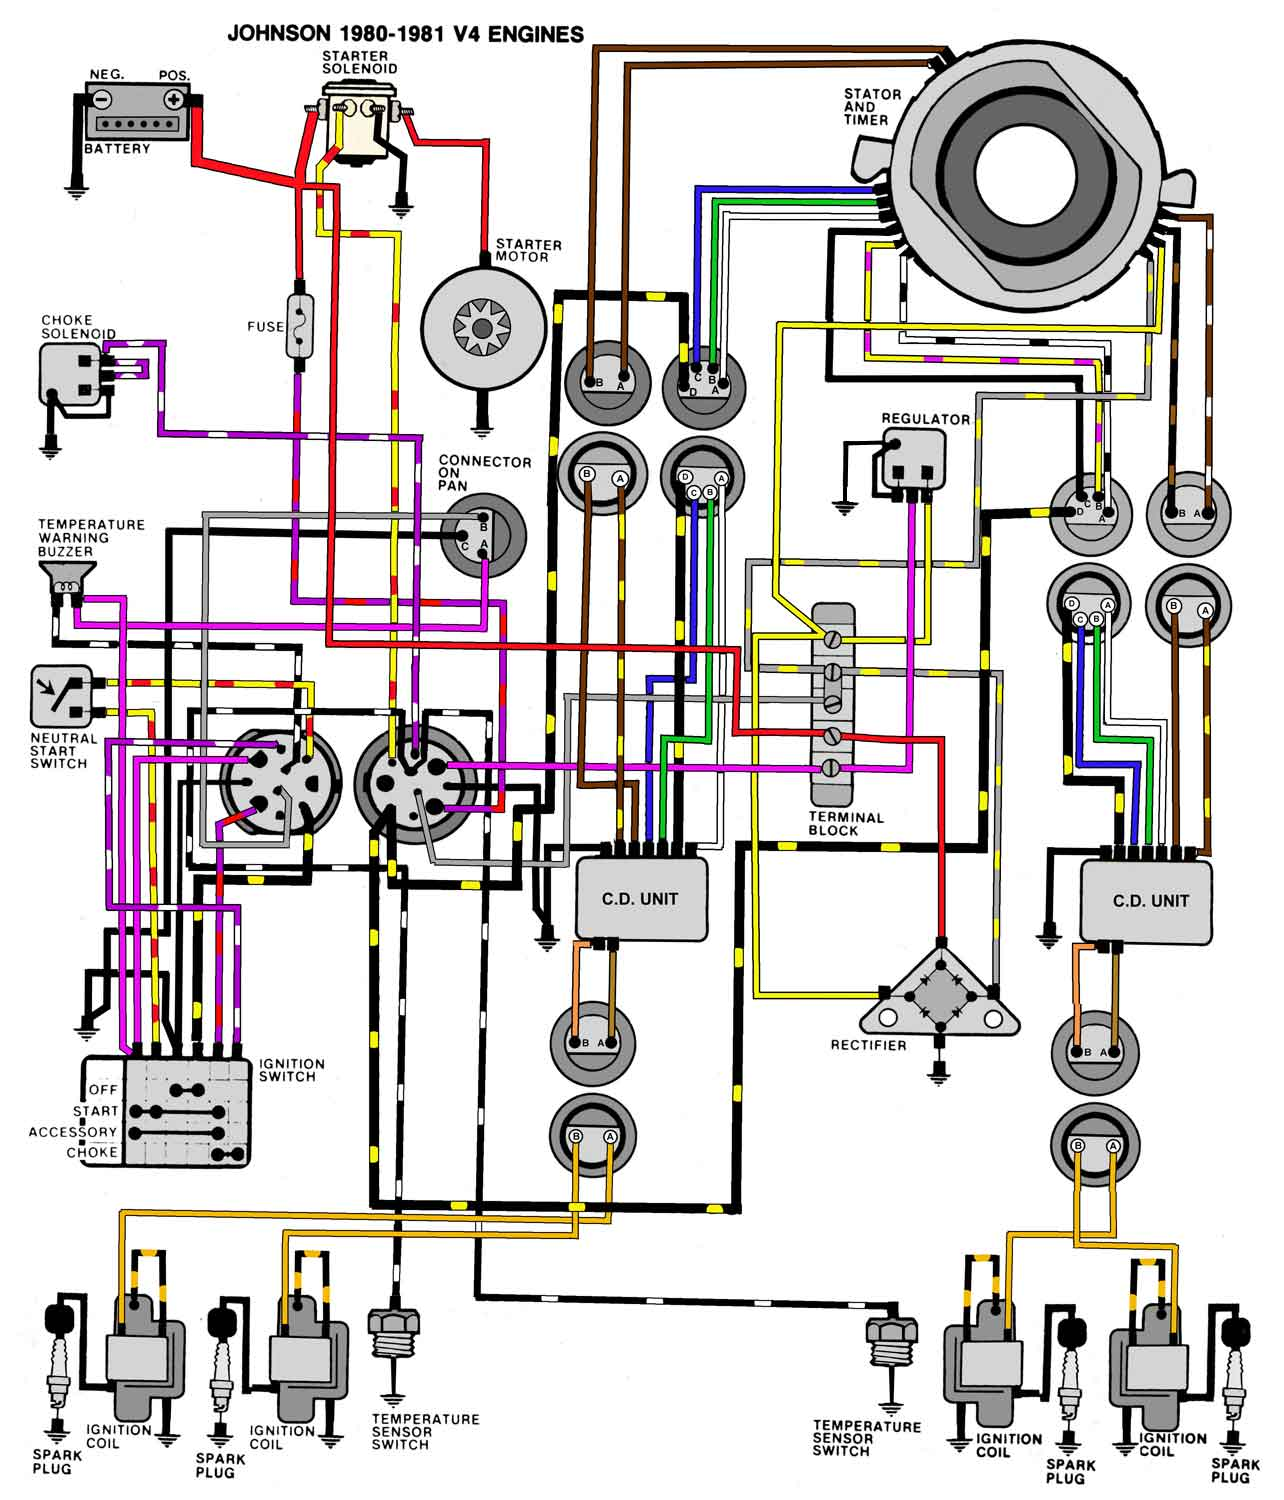 hight resolution of evinrude johnson outboard wiring diagrams mastertech marine rh maxrules com